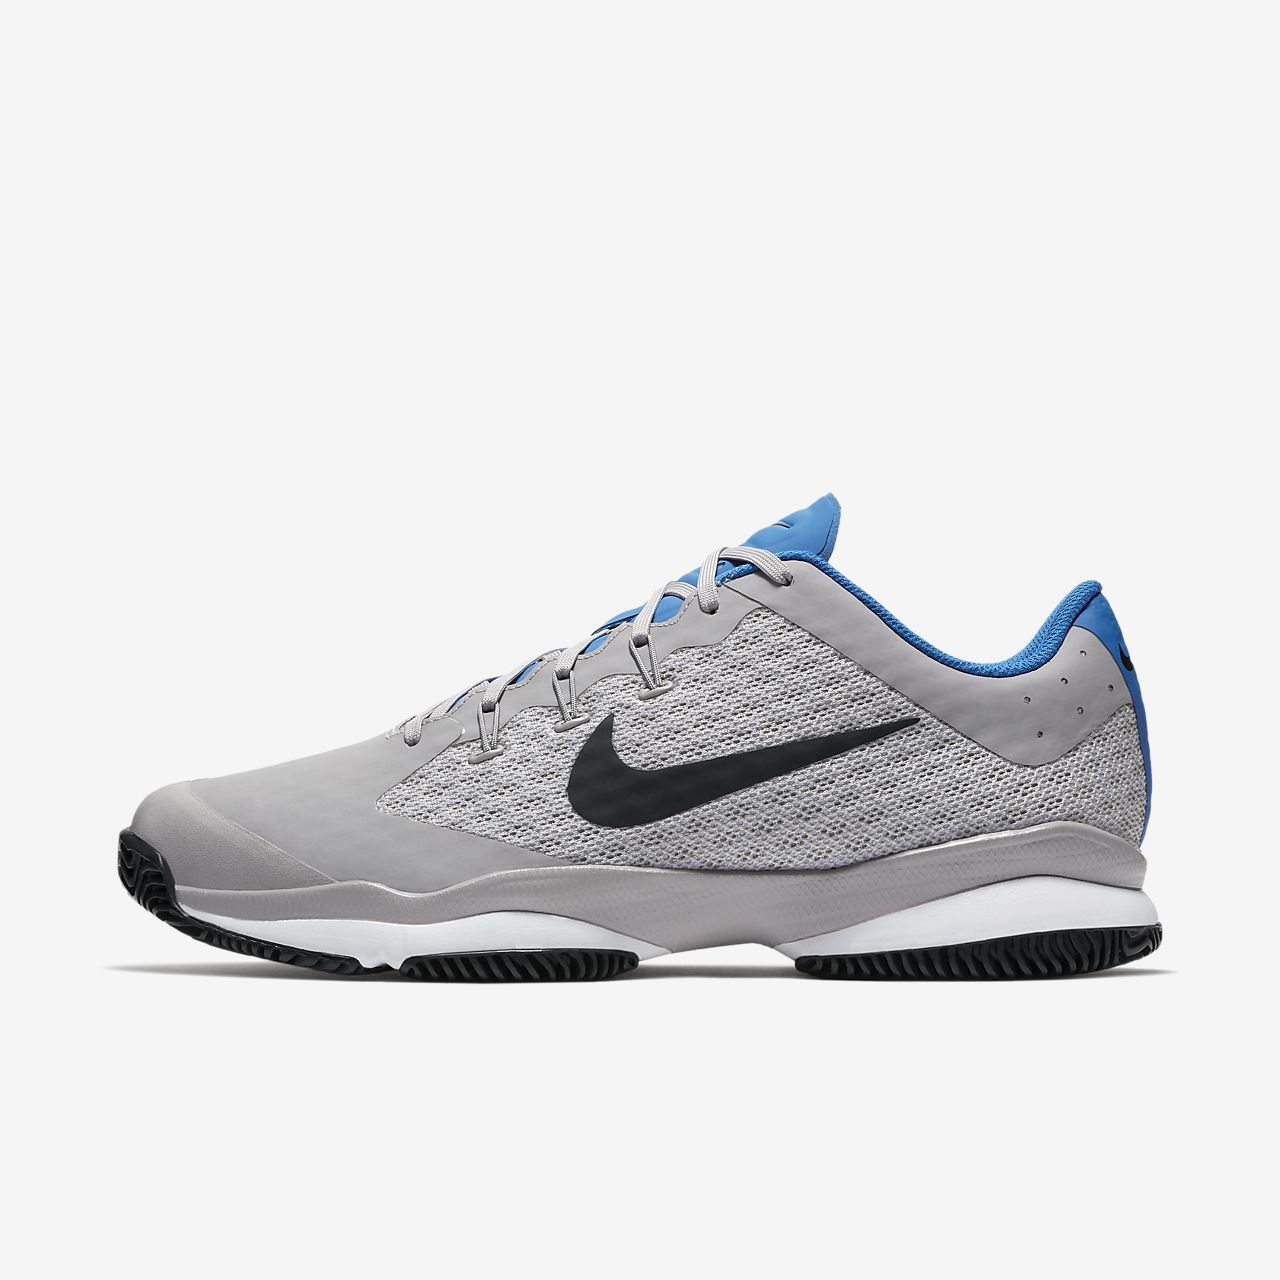 NIKE Men's Air Zoom Ultra Tennis Shoe - Nike